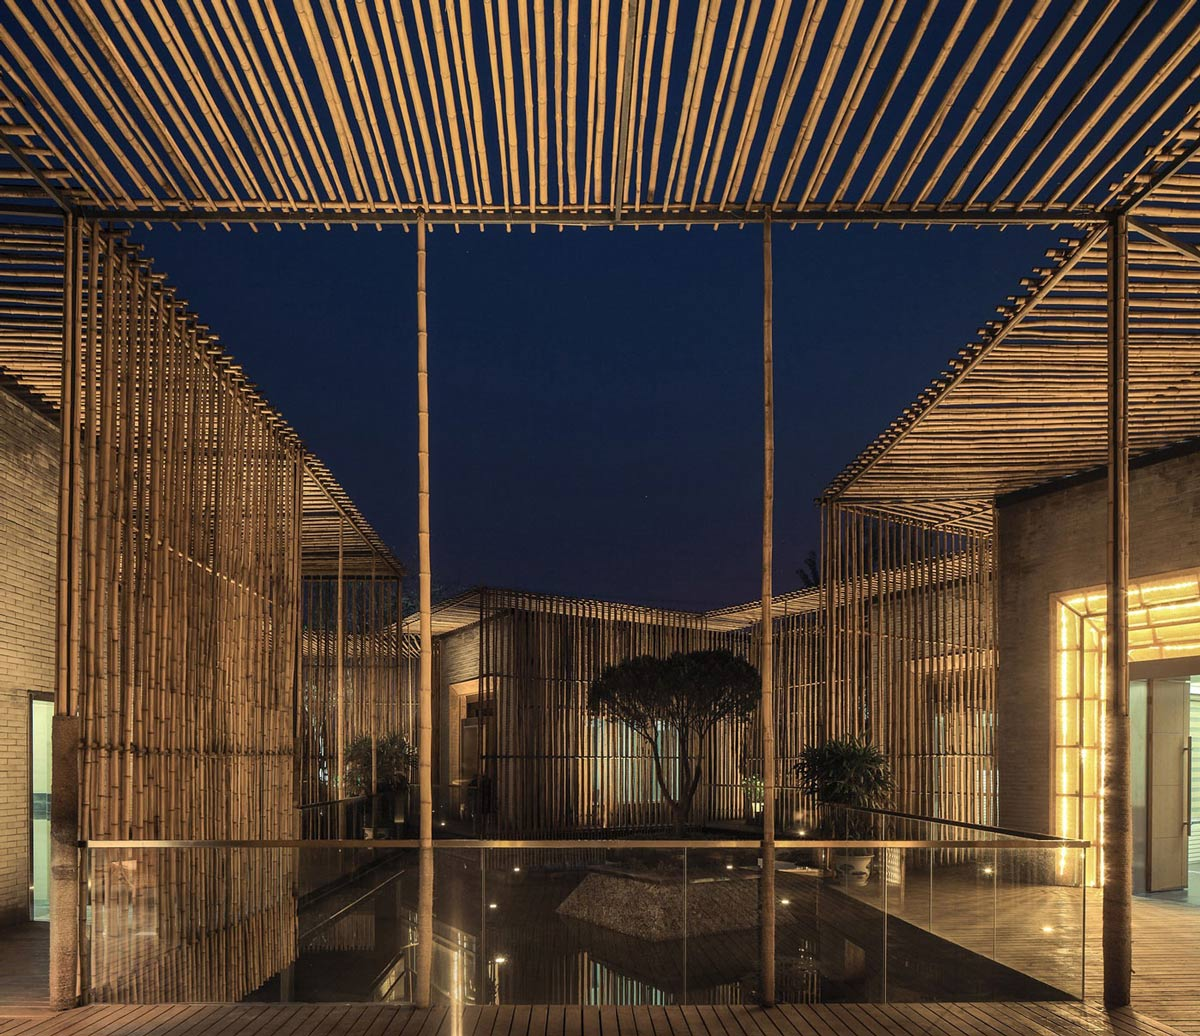 Evening, Courtyard, Floating Bamboo Courtyard Teahouse in ShiQiao, China